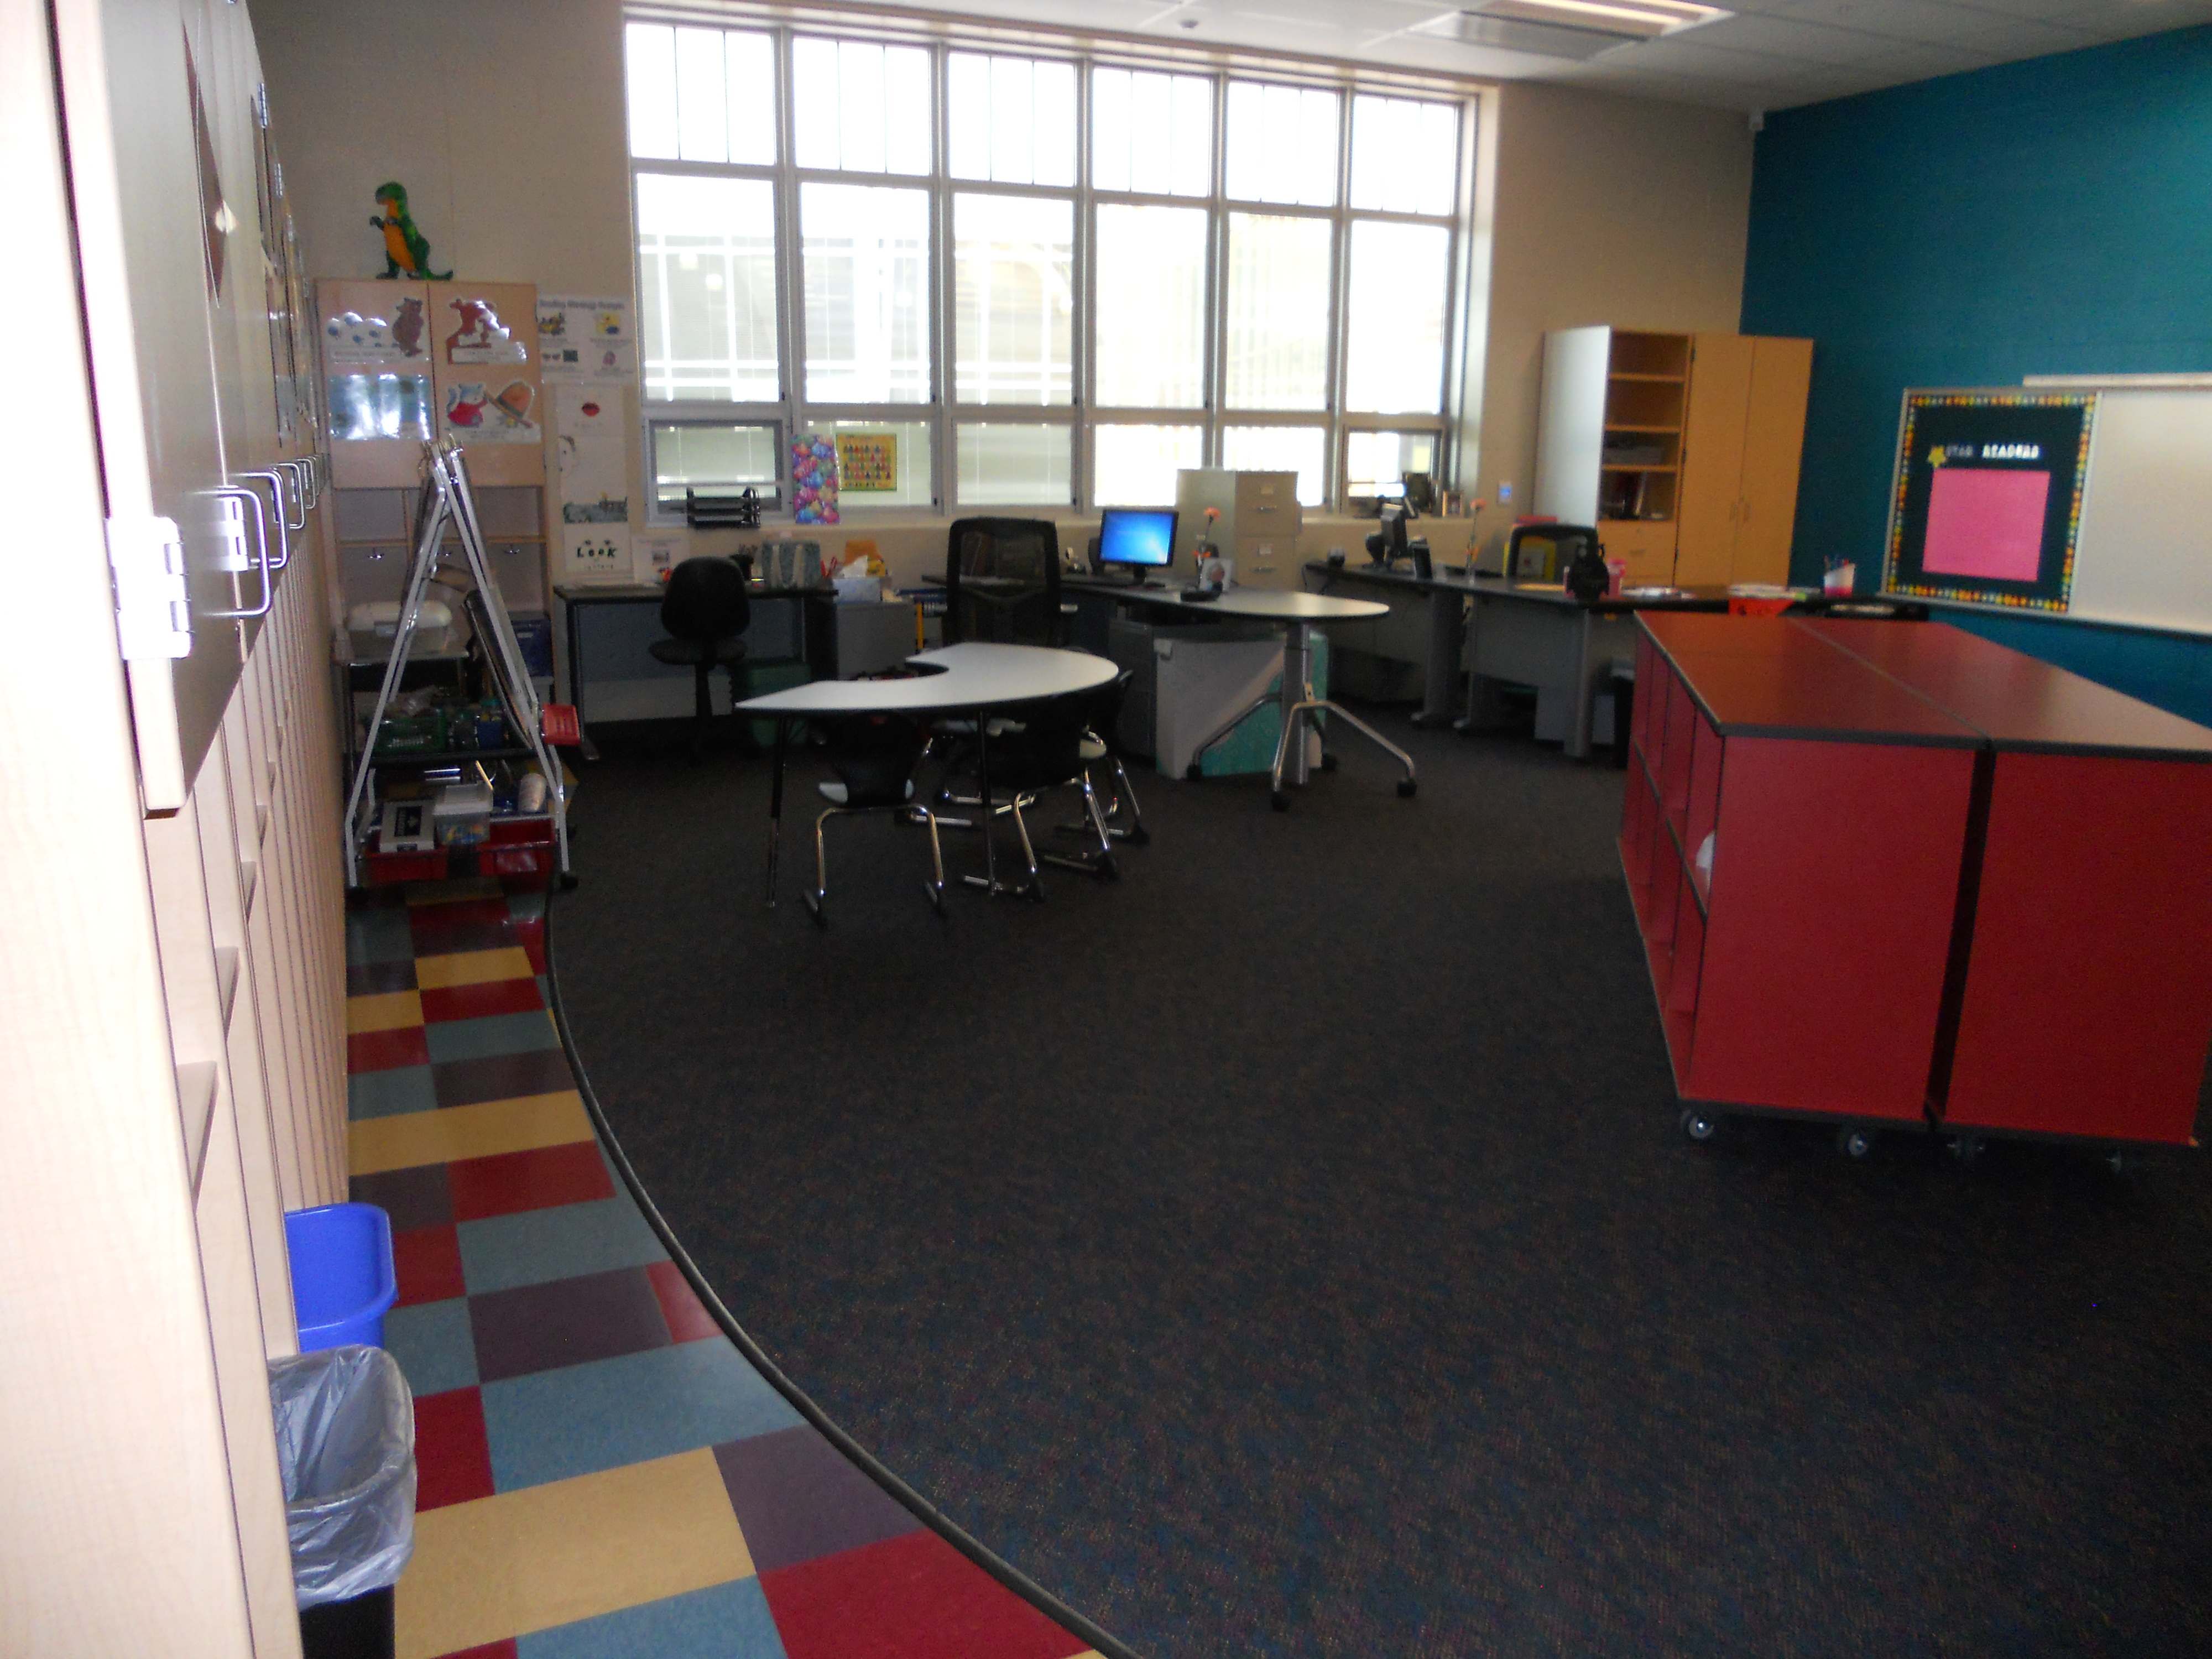 One large classroom cluttered with cabinets and tables and chairs.